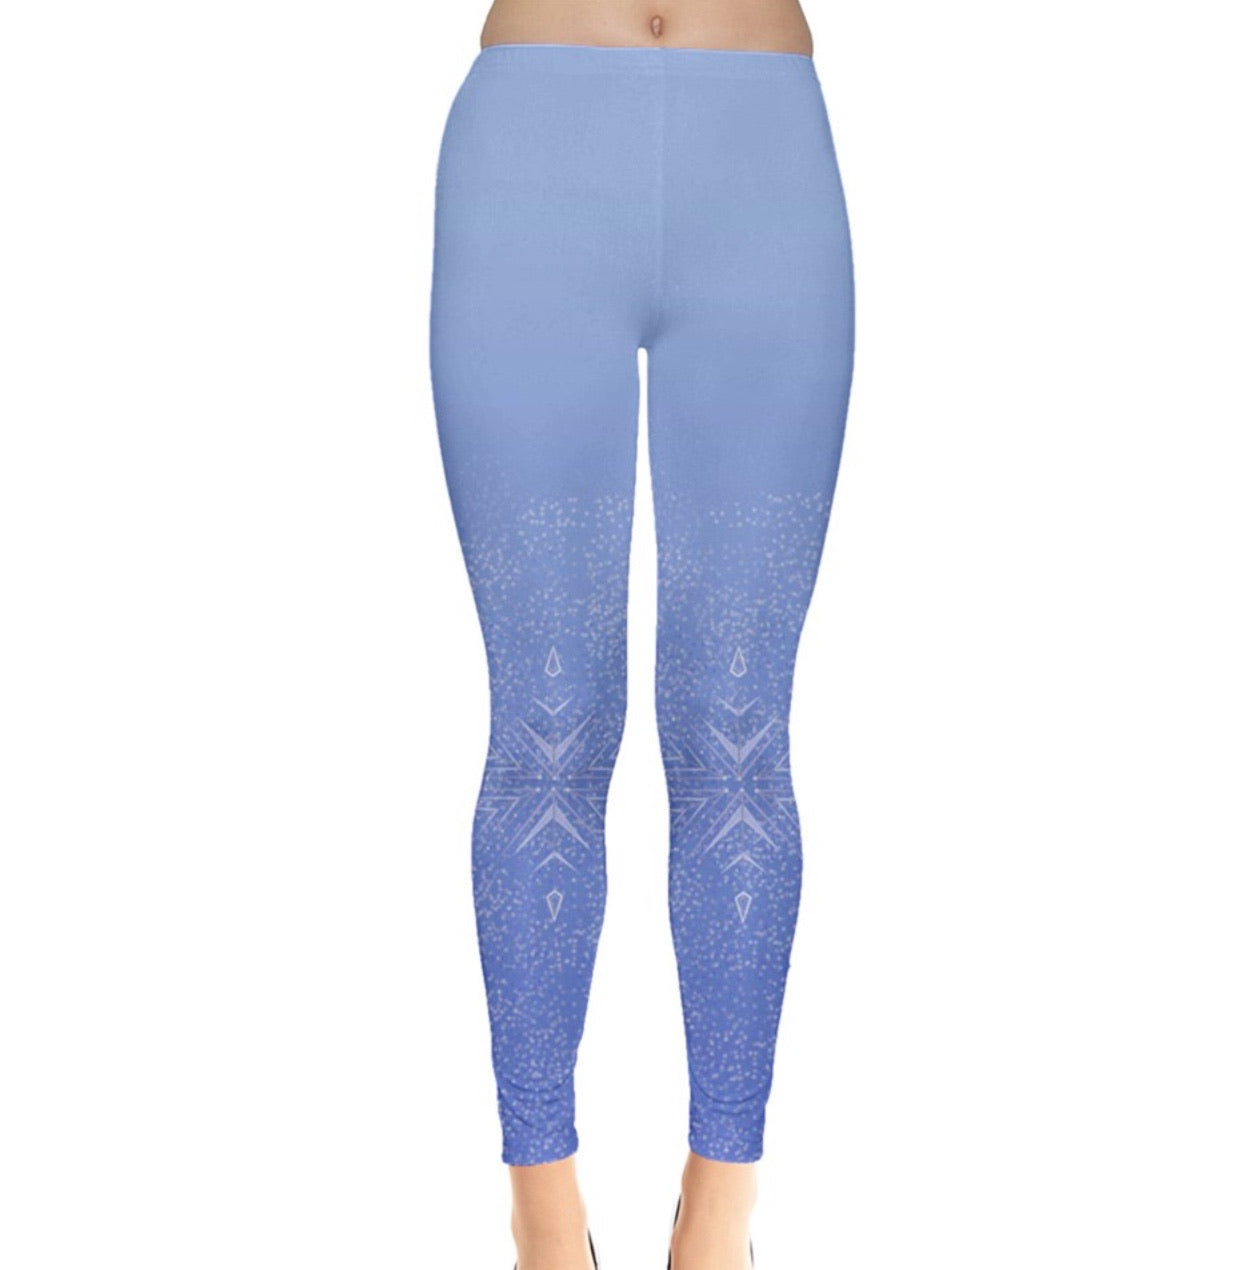 Elsa leggings - Frozen 2 Costume